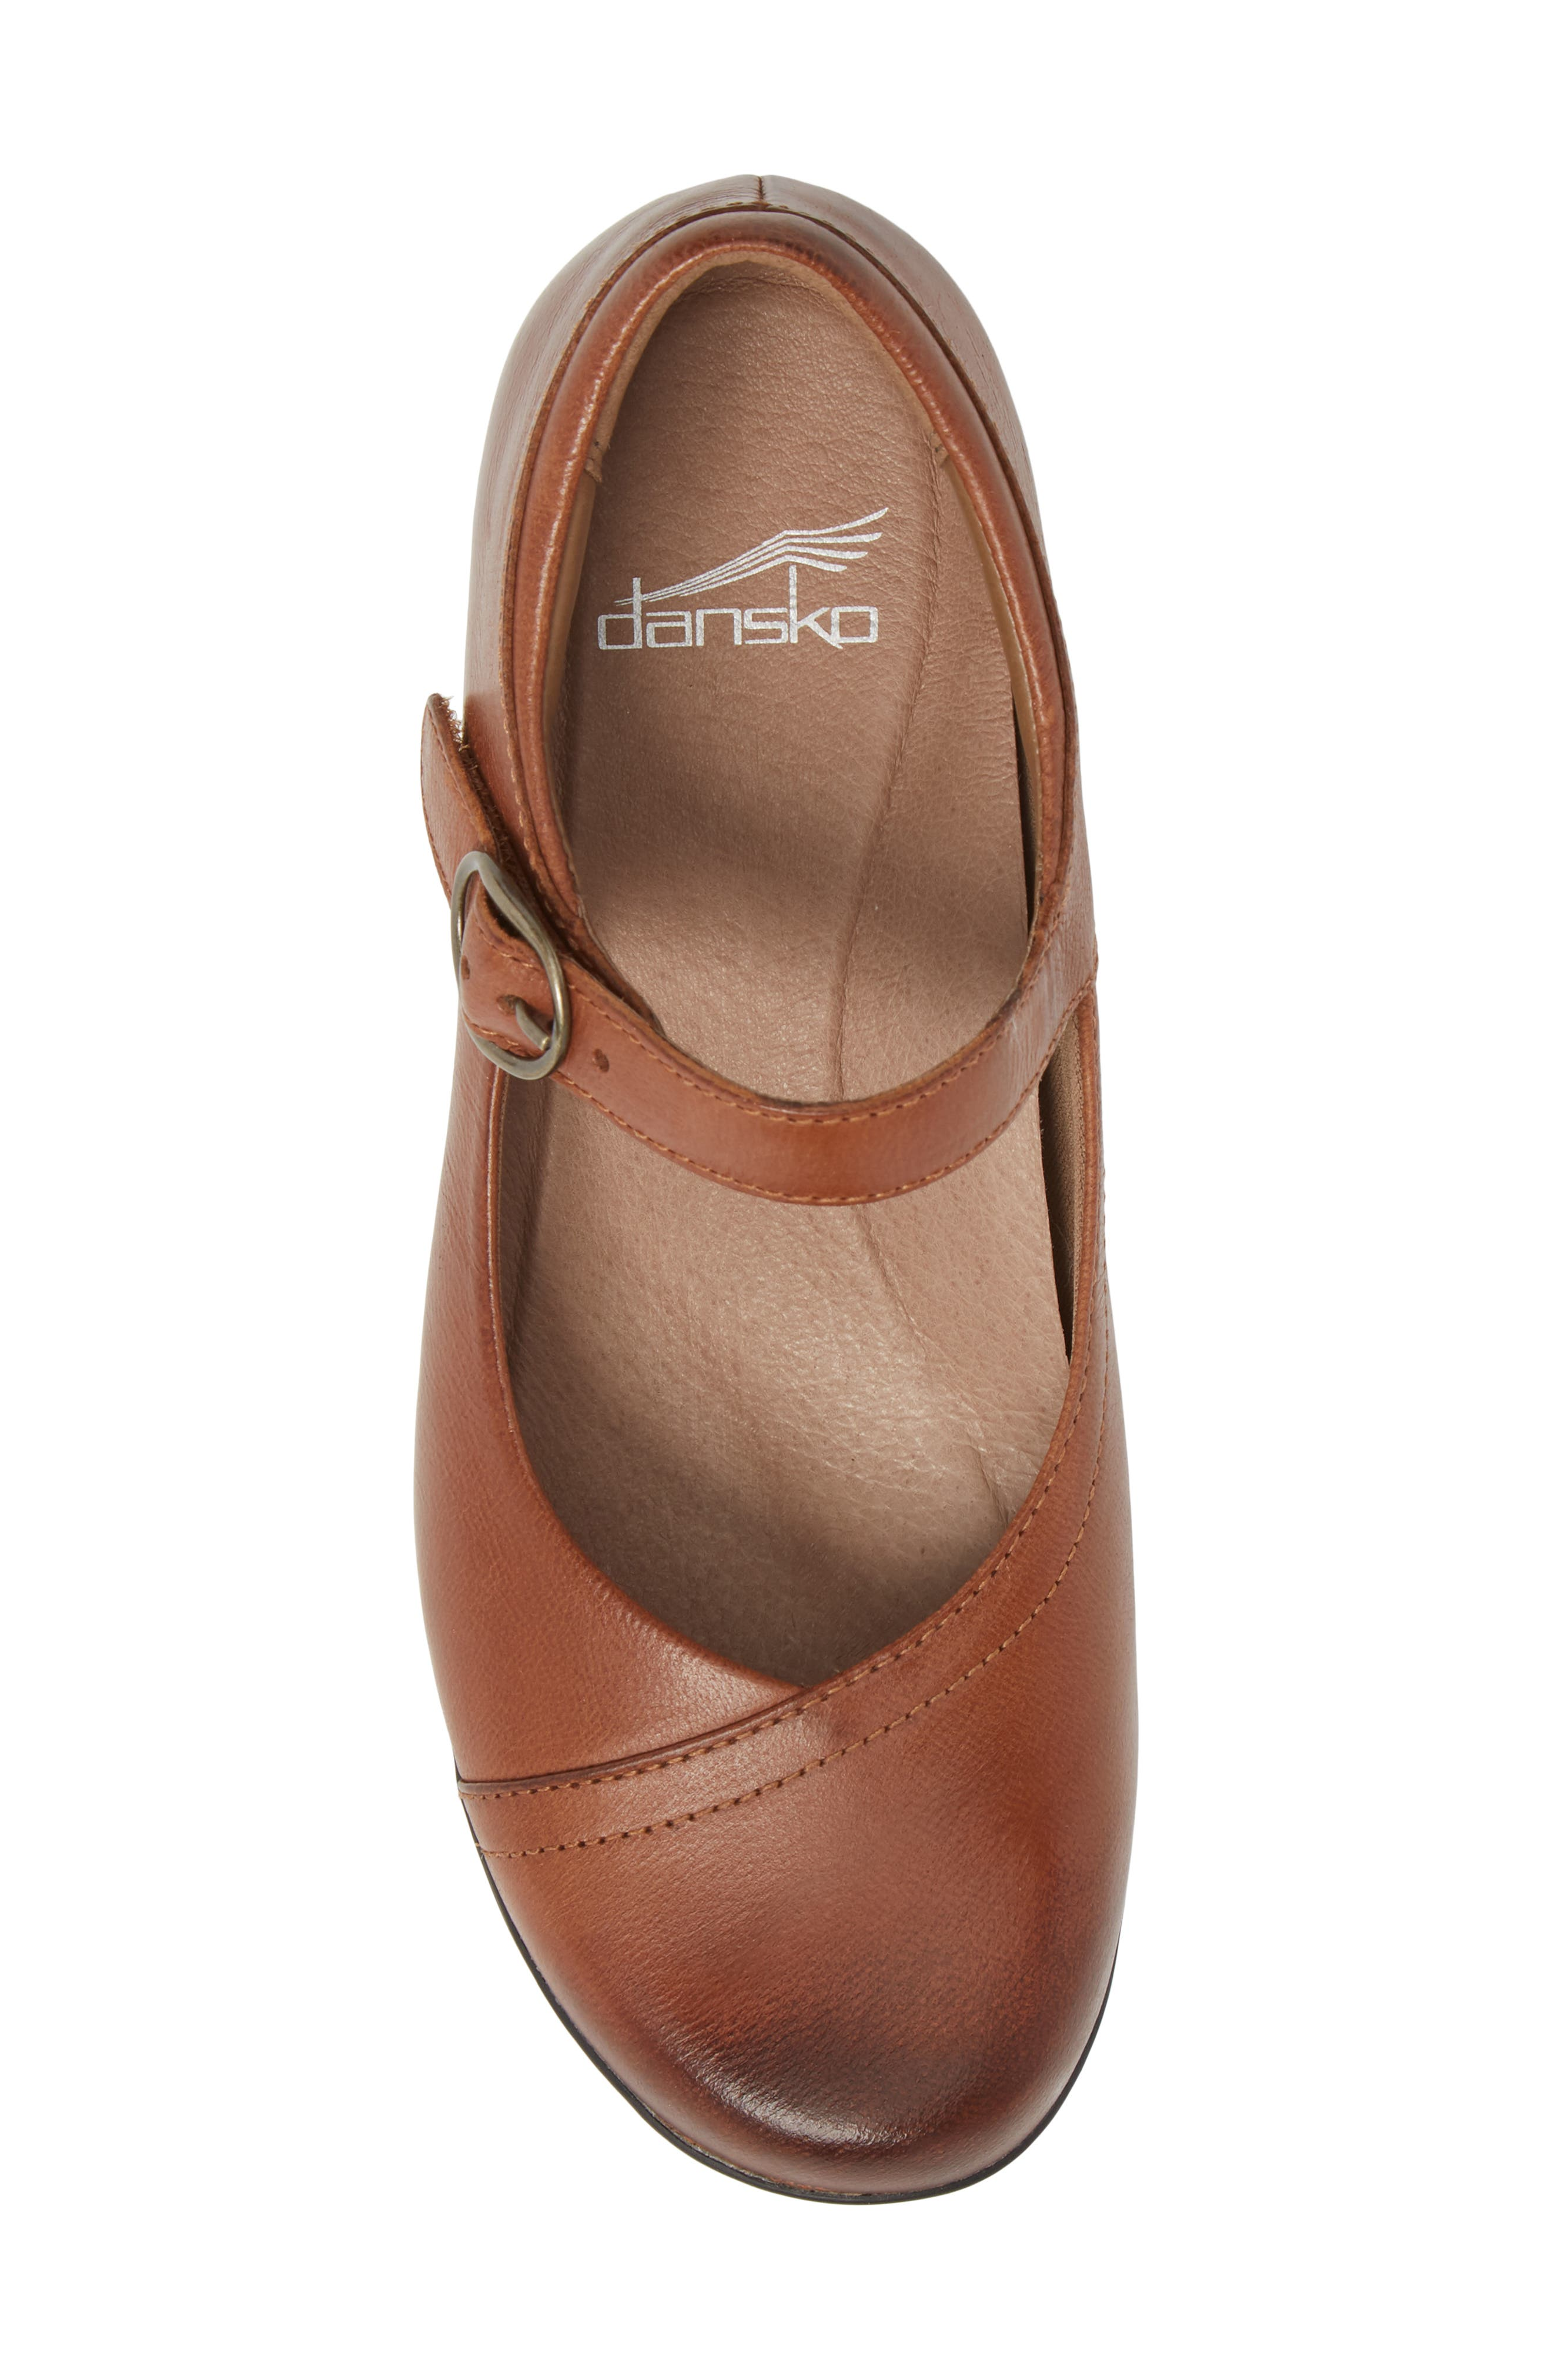 Fawna Mary Jane Flat,                             Alternate thumbnail 5, color,                             Chestnut Leather